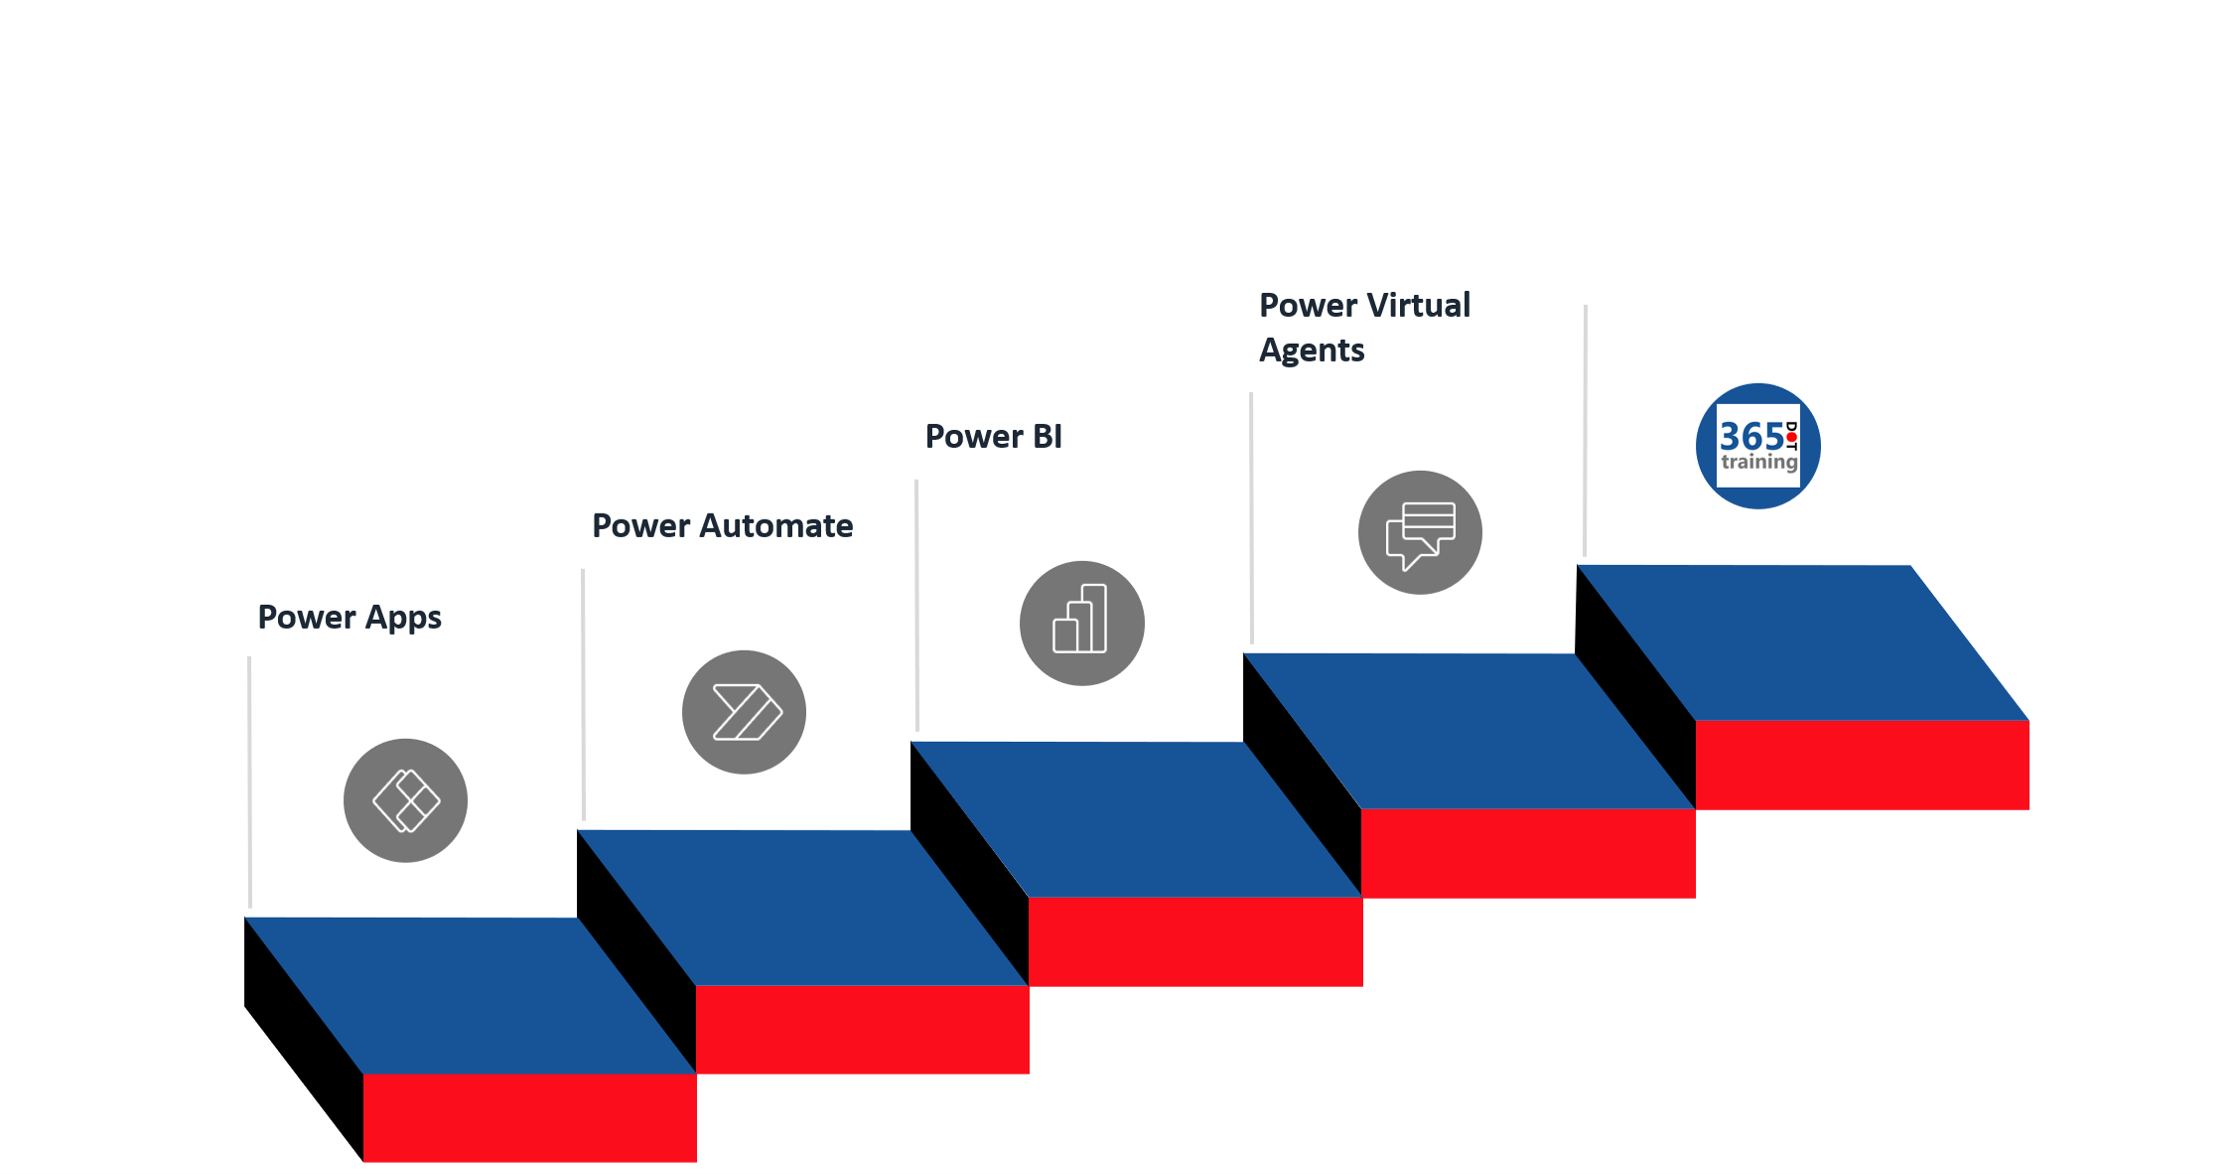 The Absolute Beginner's Guide to the Power Platform thumbnail image